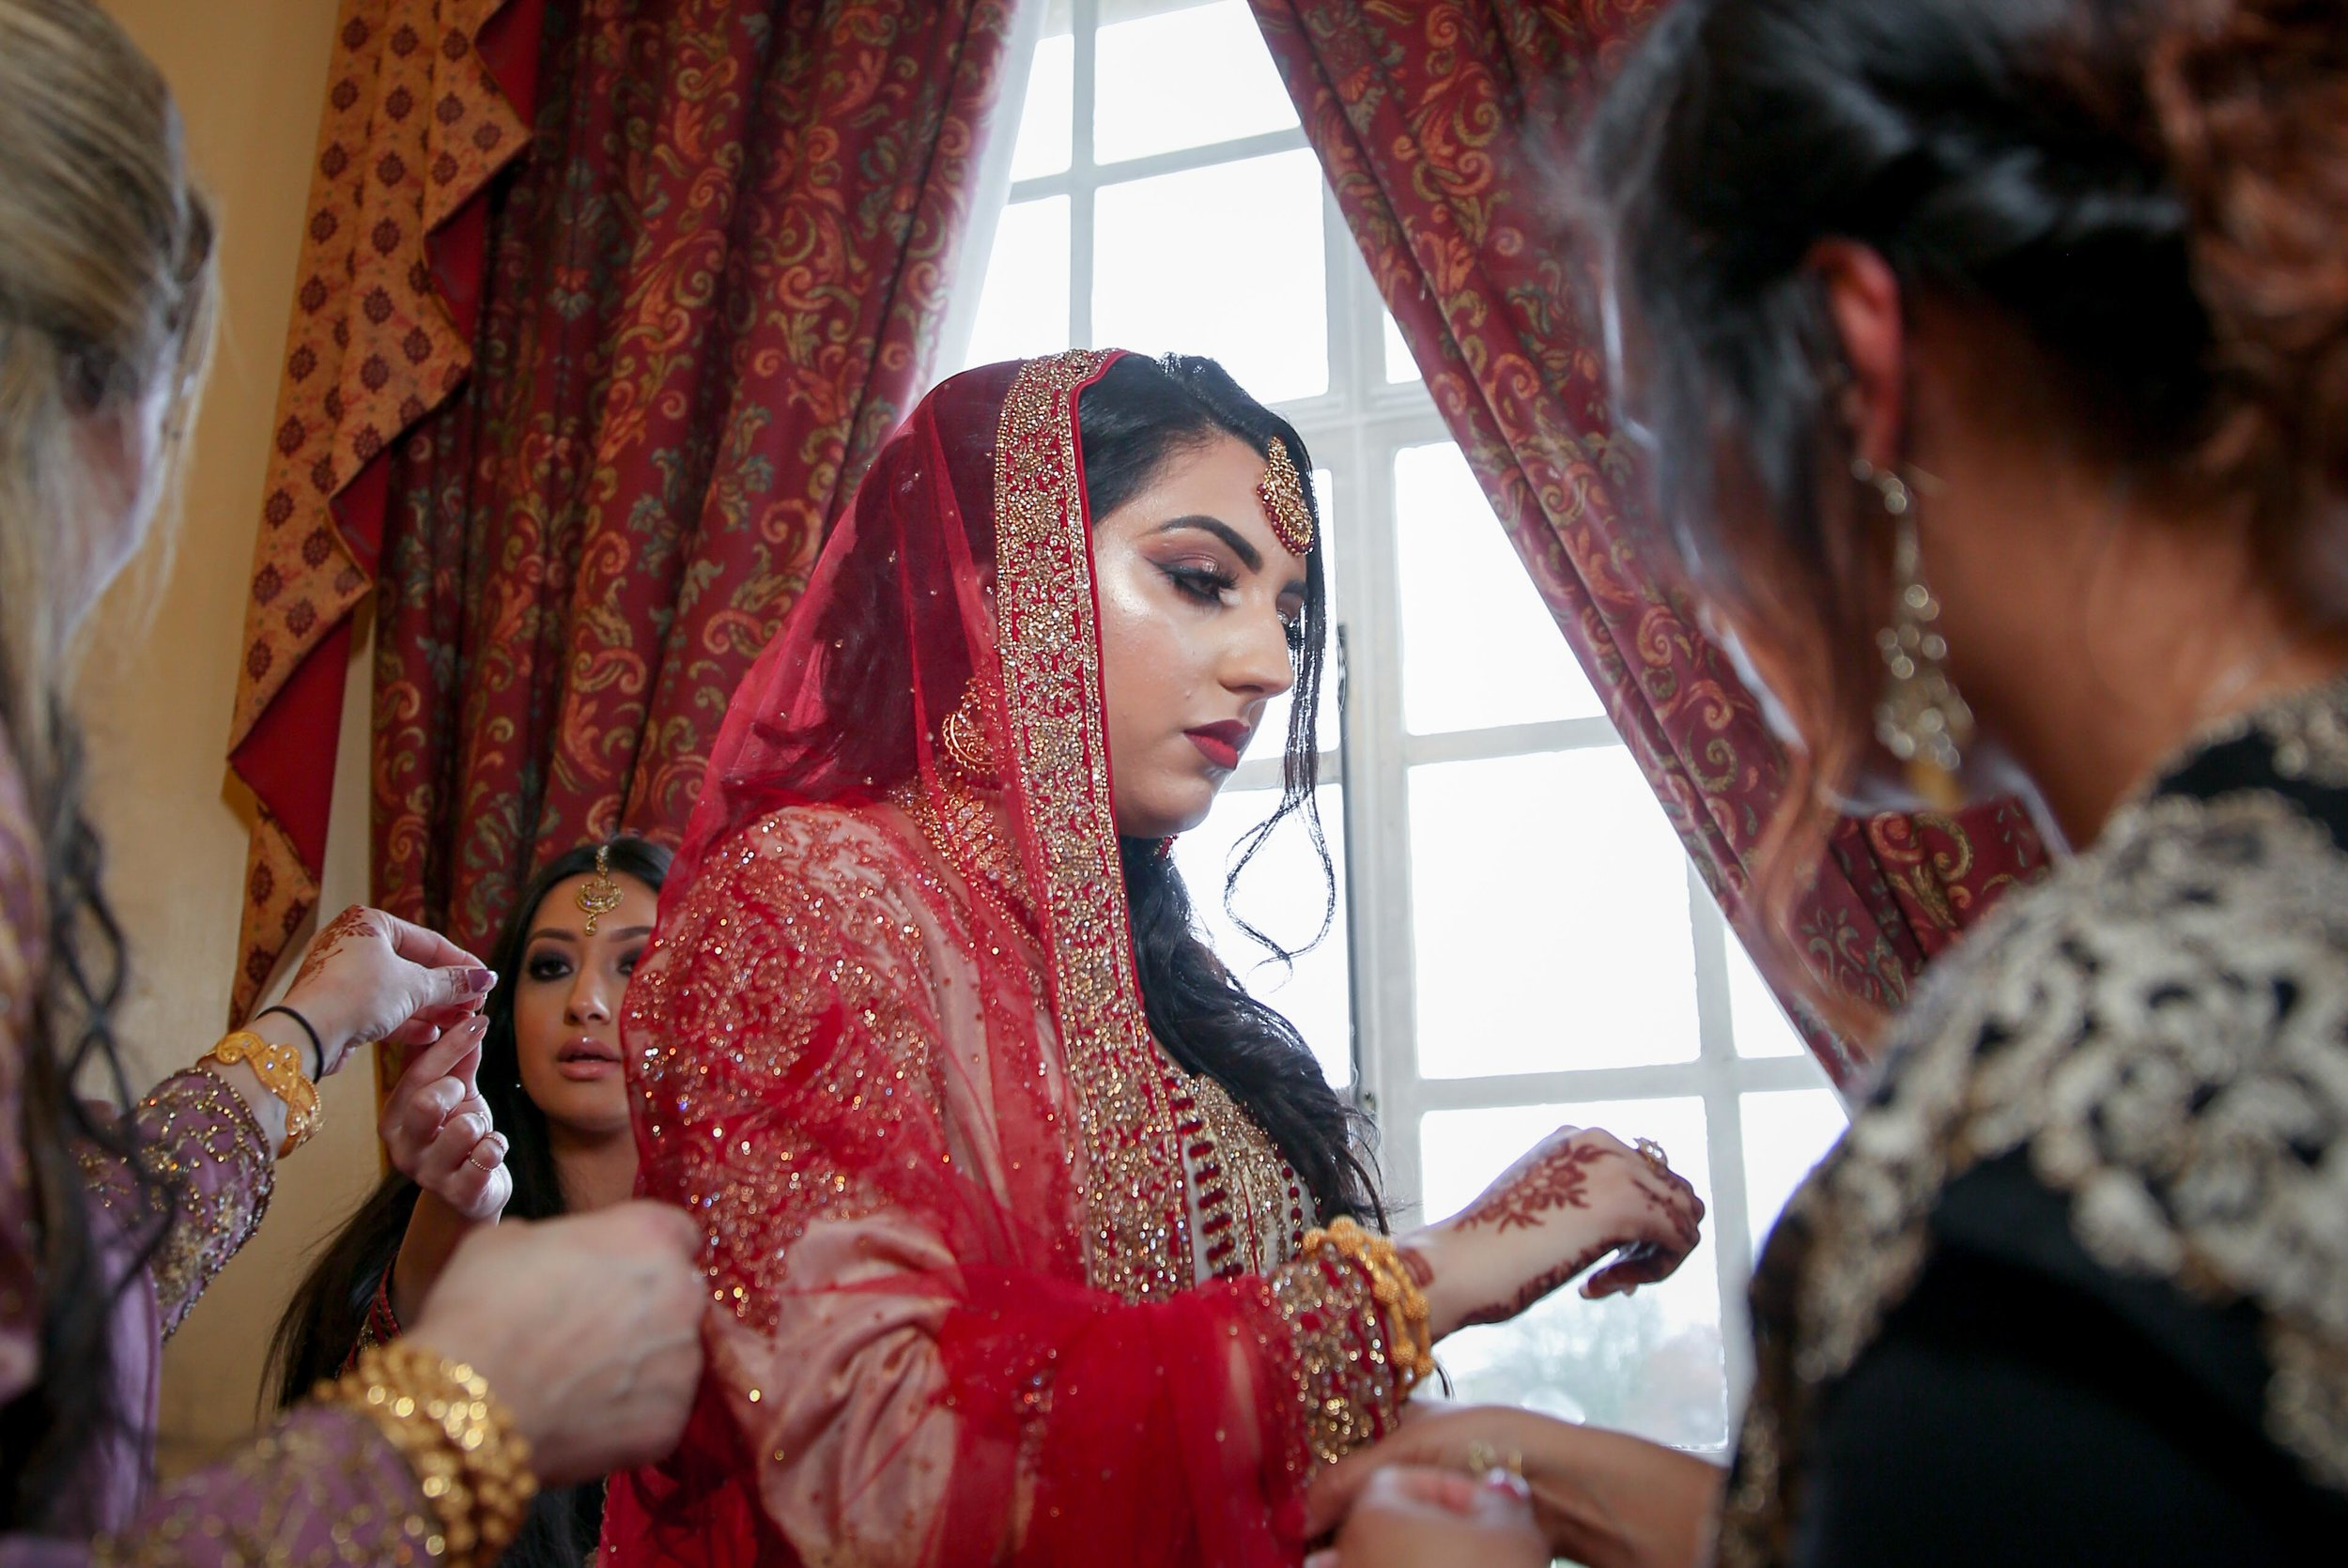 Female-asian-wedding-photographer-Cardiff-City-Hall-natalia-smith-photography-22.jpg